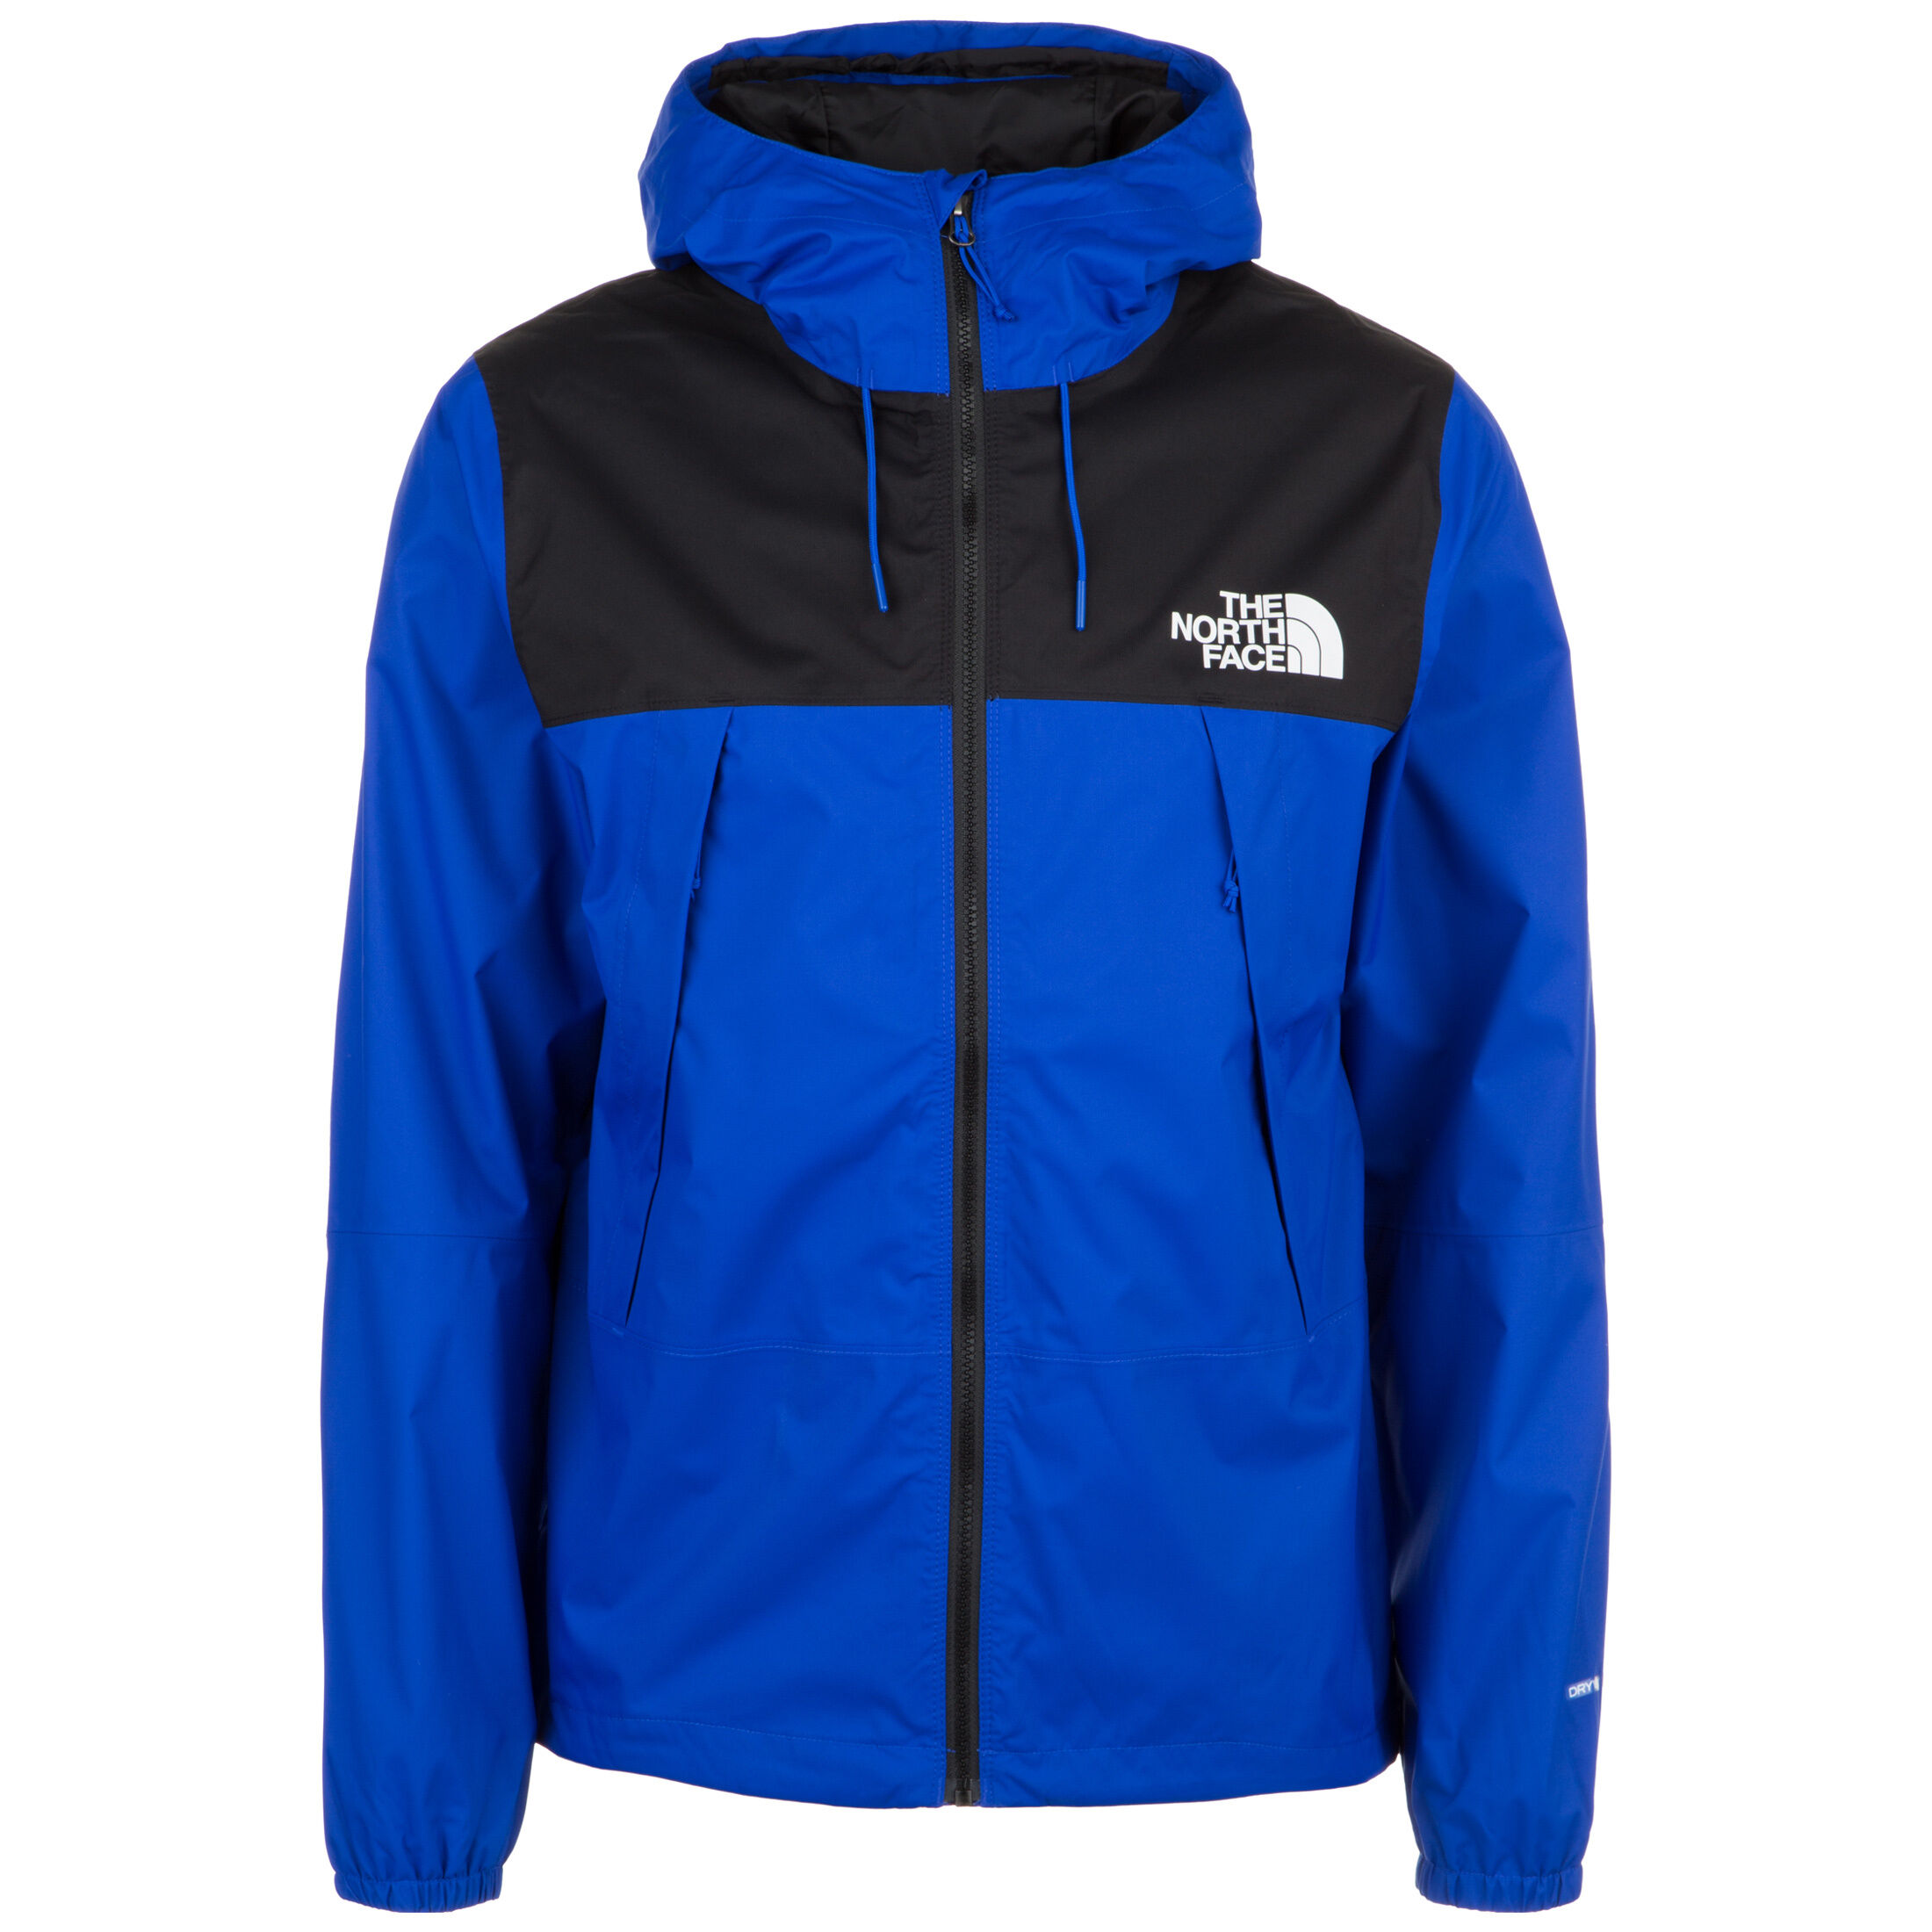 Bekleidung The North Face | Männer Lifestyle bei OUTFITTER